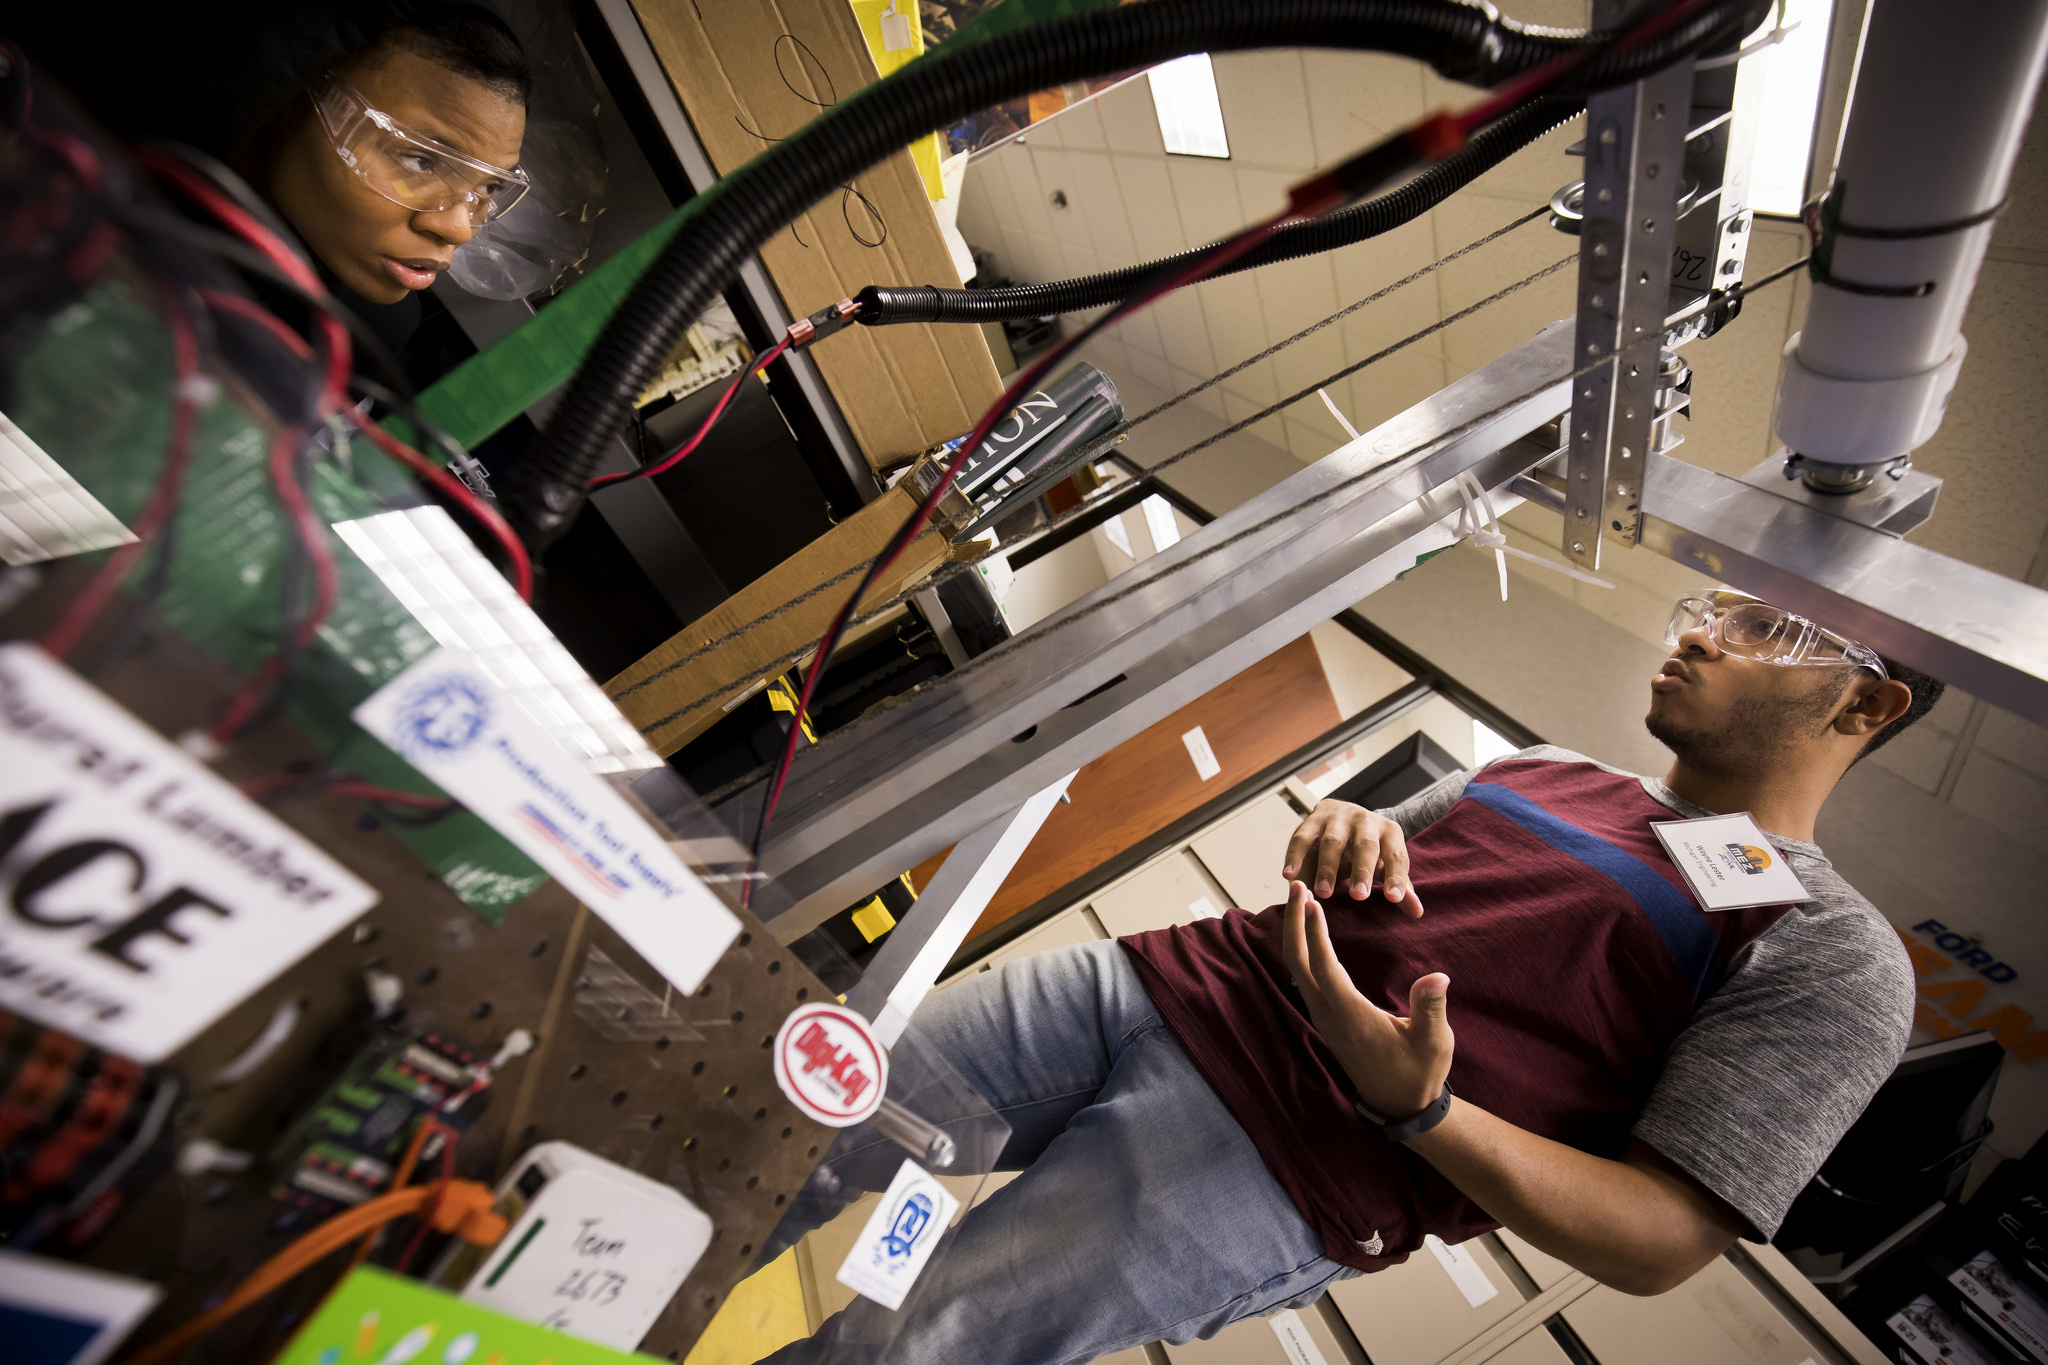 Students work at the Michigan Engineering Zone in Detroit, MI